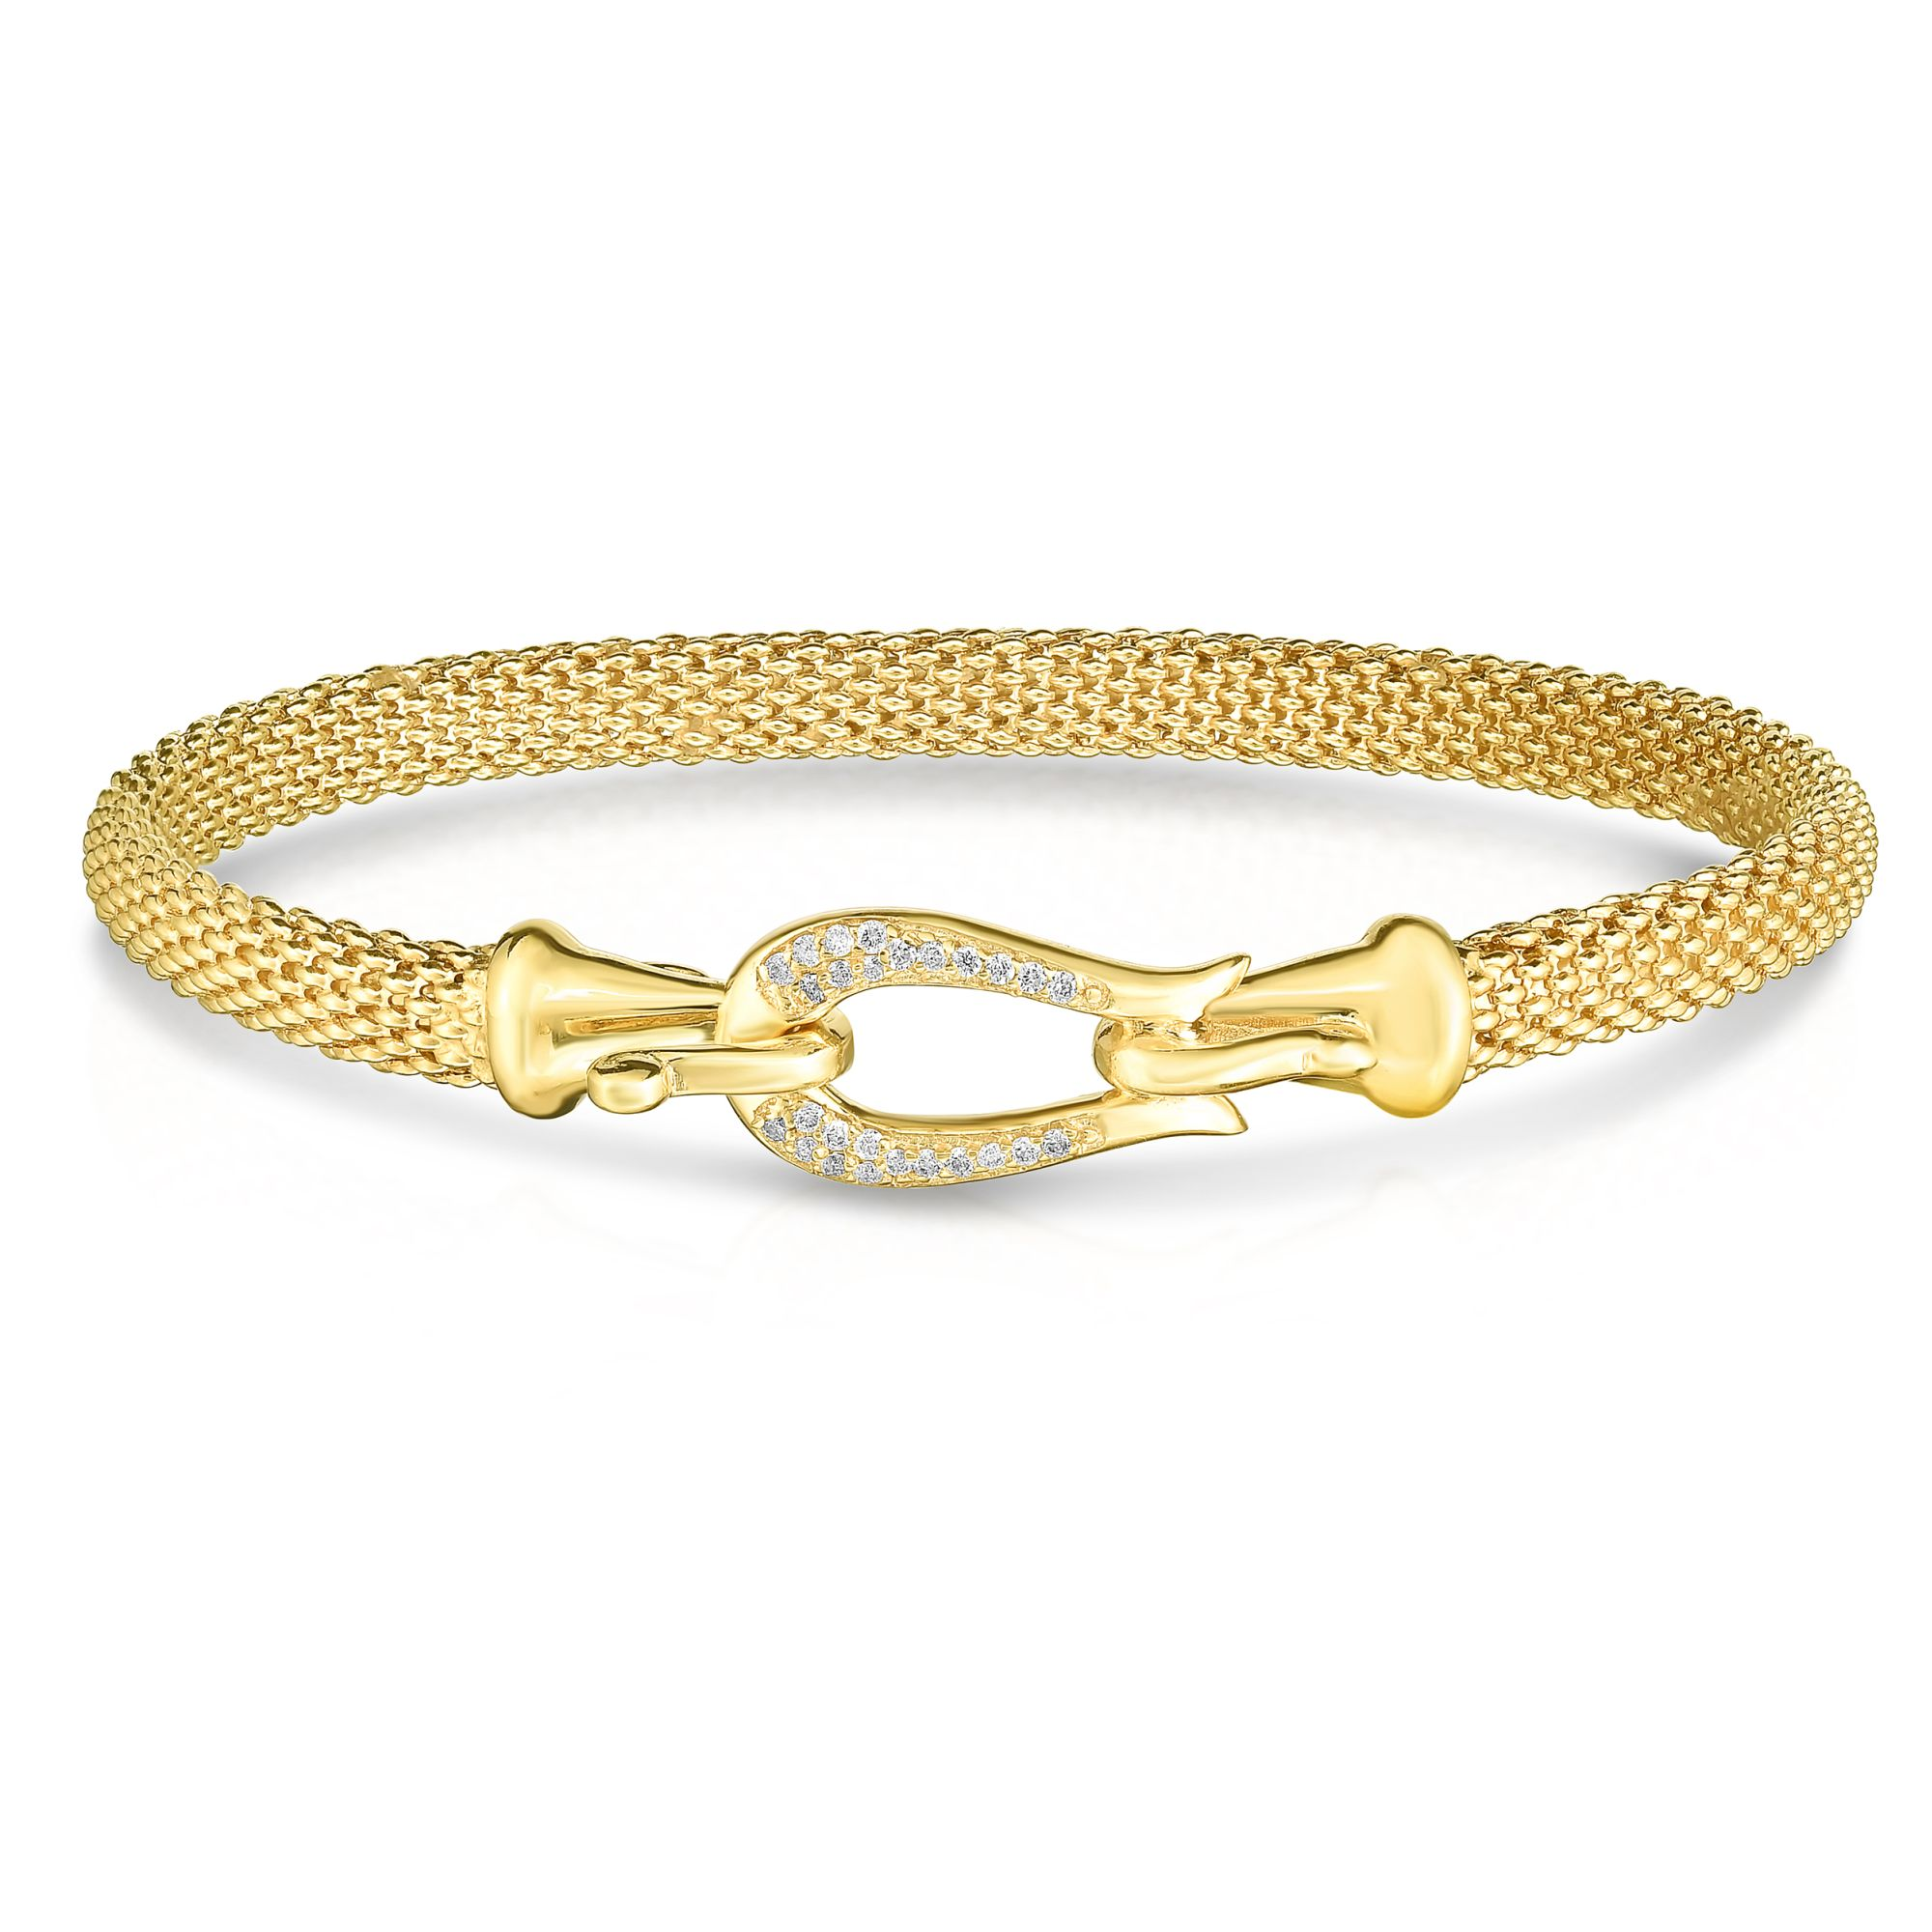 14kt Gold 7.25 inches Yellow Finish 5mm Textured Dome Panther Bangle with Hook Clasp with 0.1300ct 1mm White Diamond